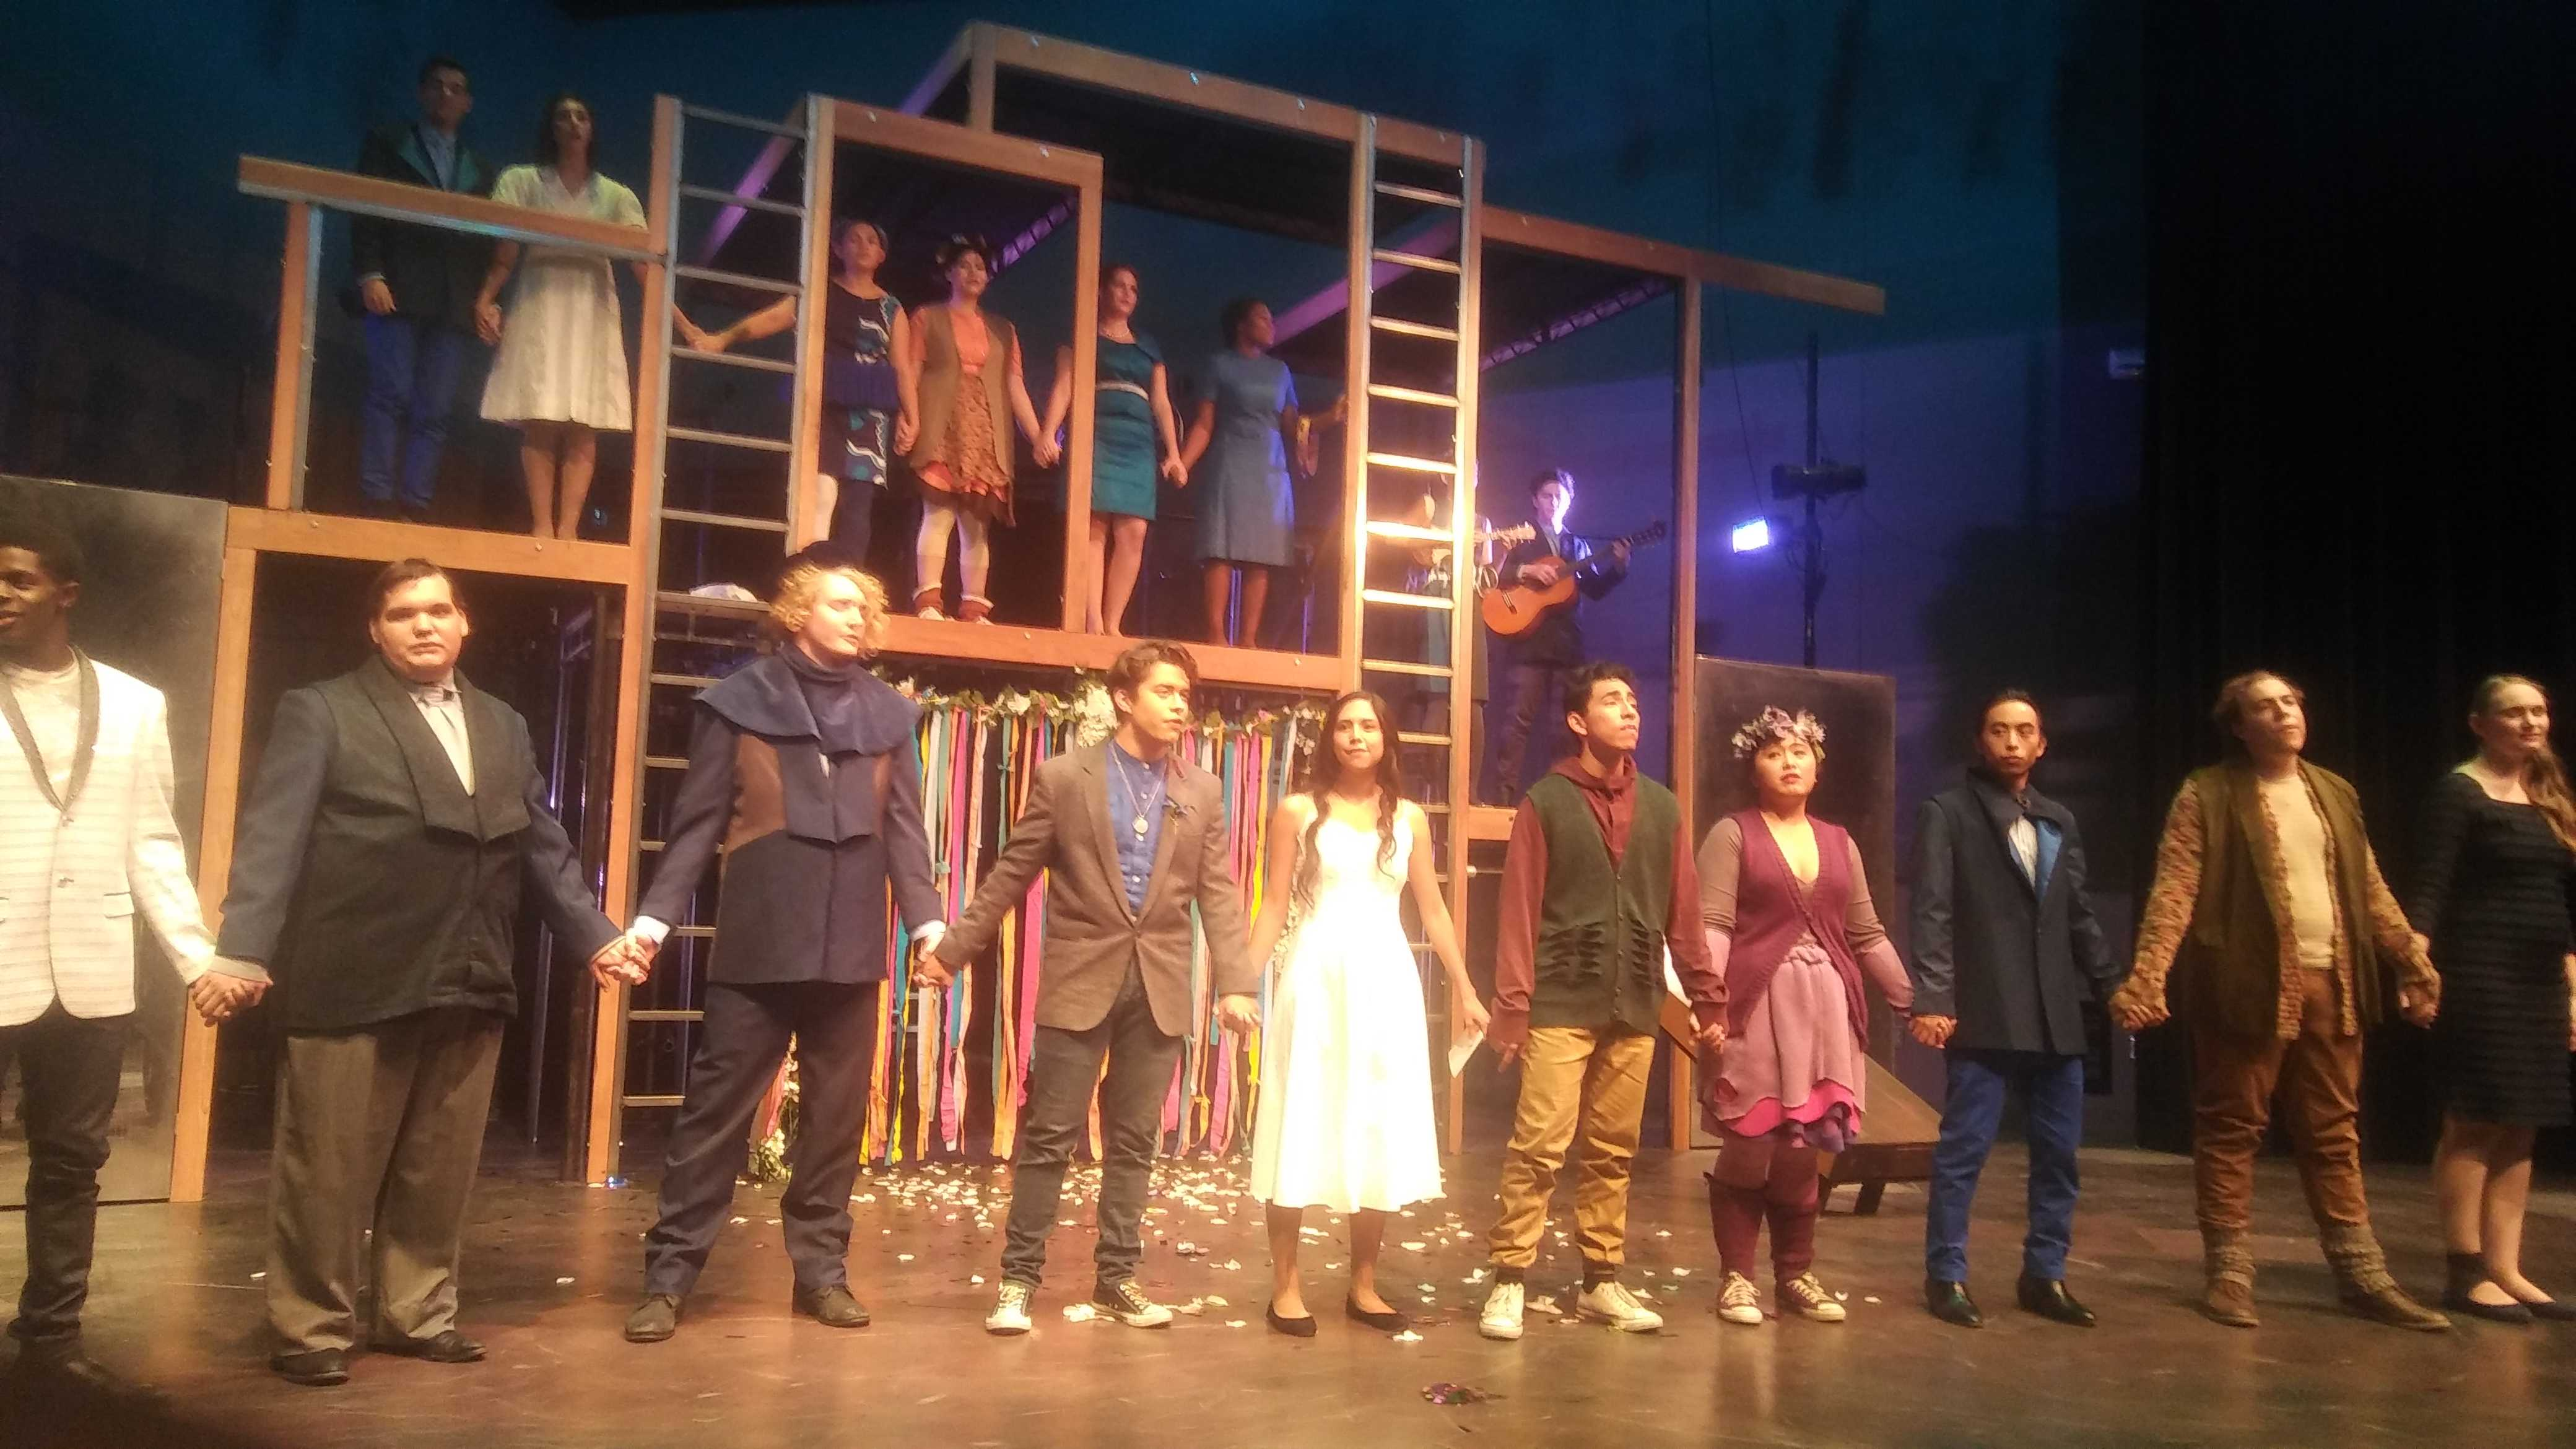 Cast+of+CSUN+play+joins+hands+onstage